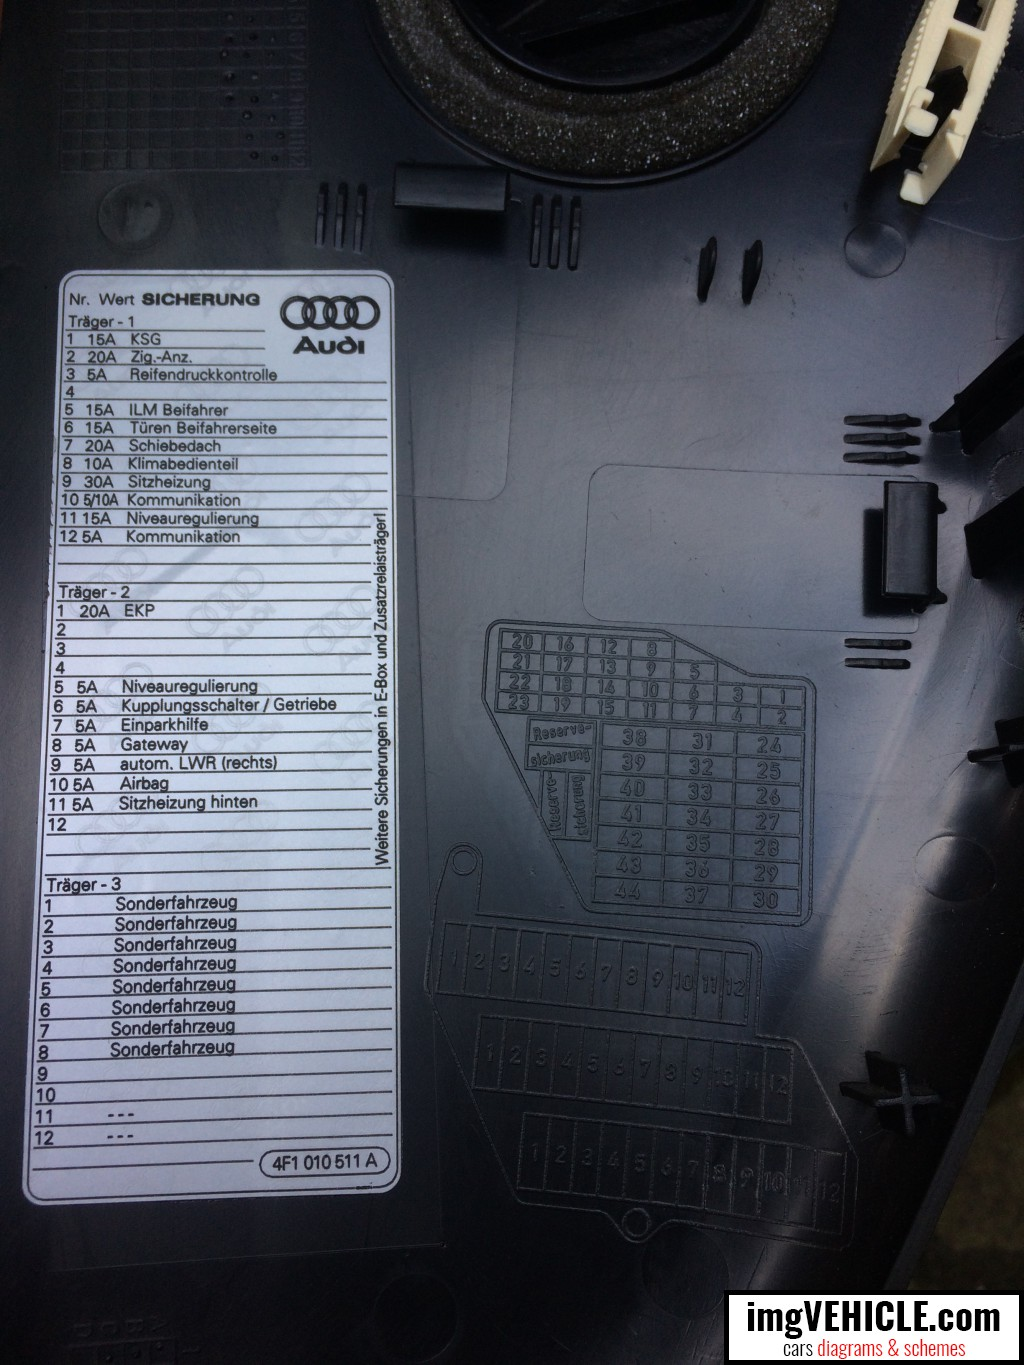 2004 Audi Fuse Box Wiring Library 2006 A3 A6 C6 Dash Panel Diagram 2